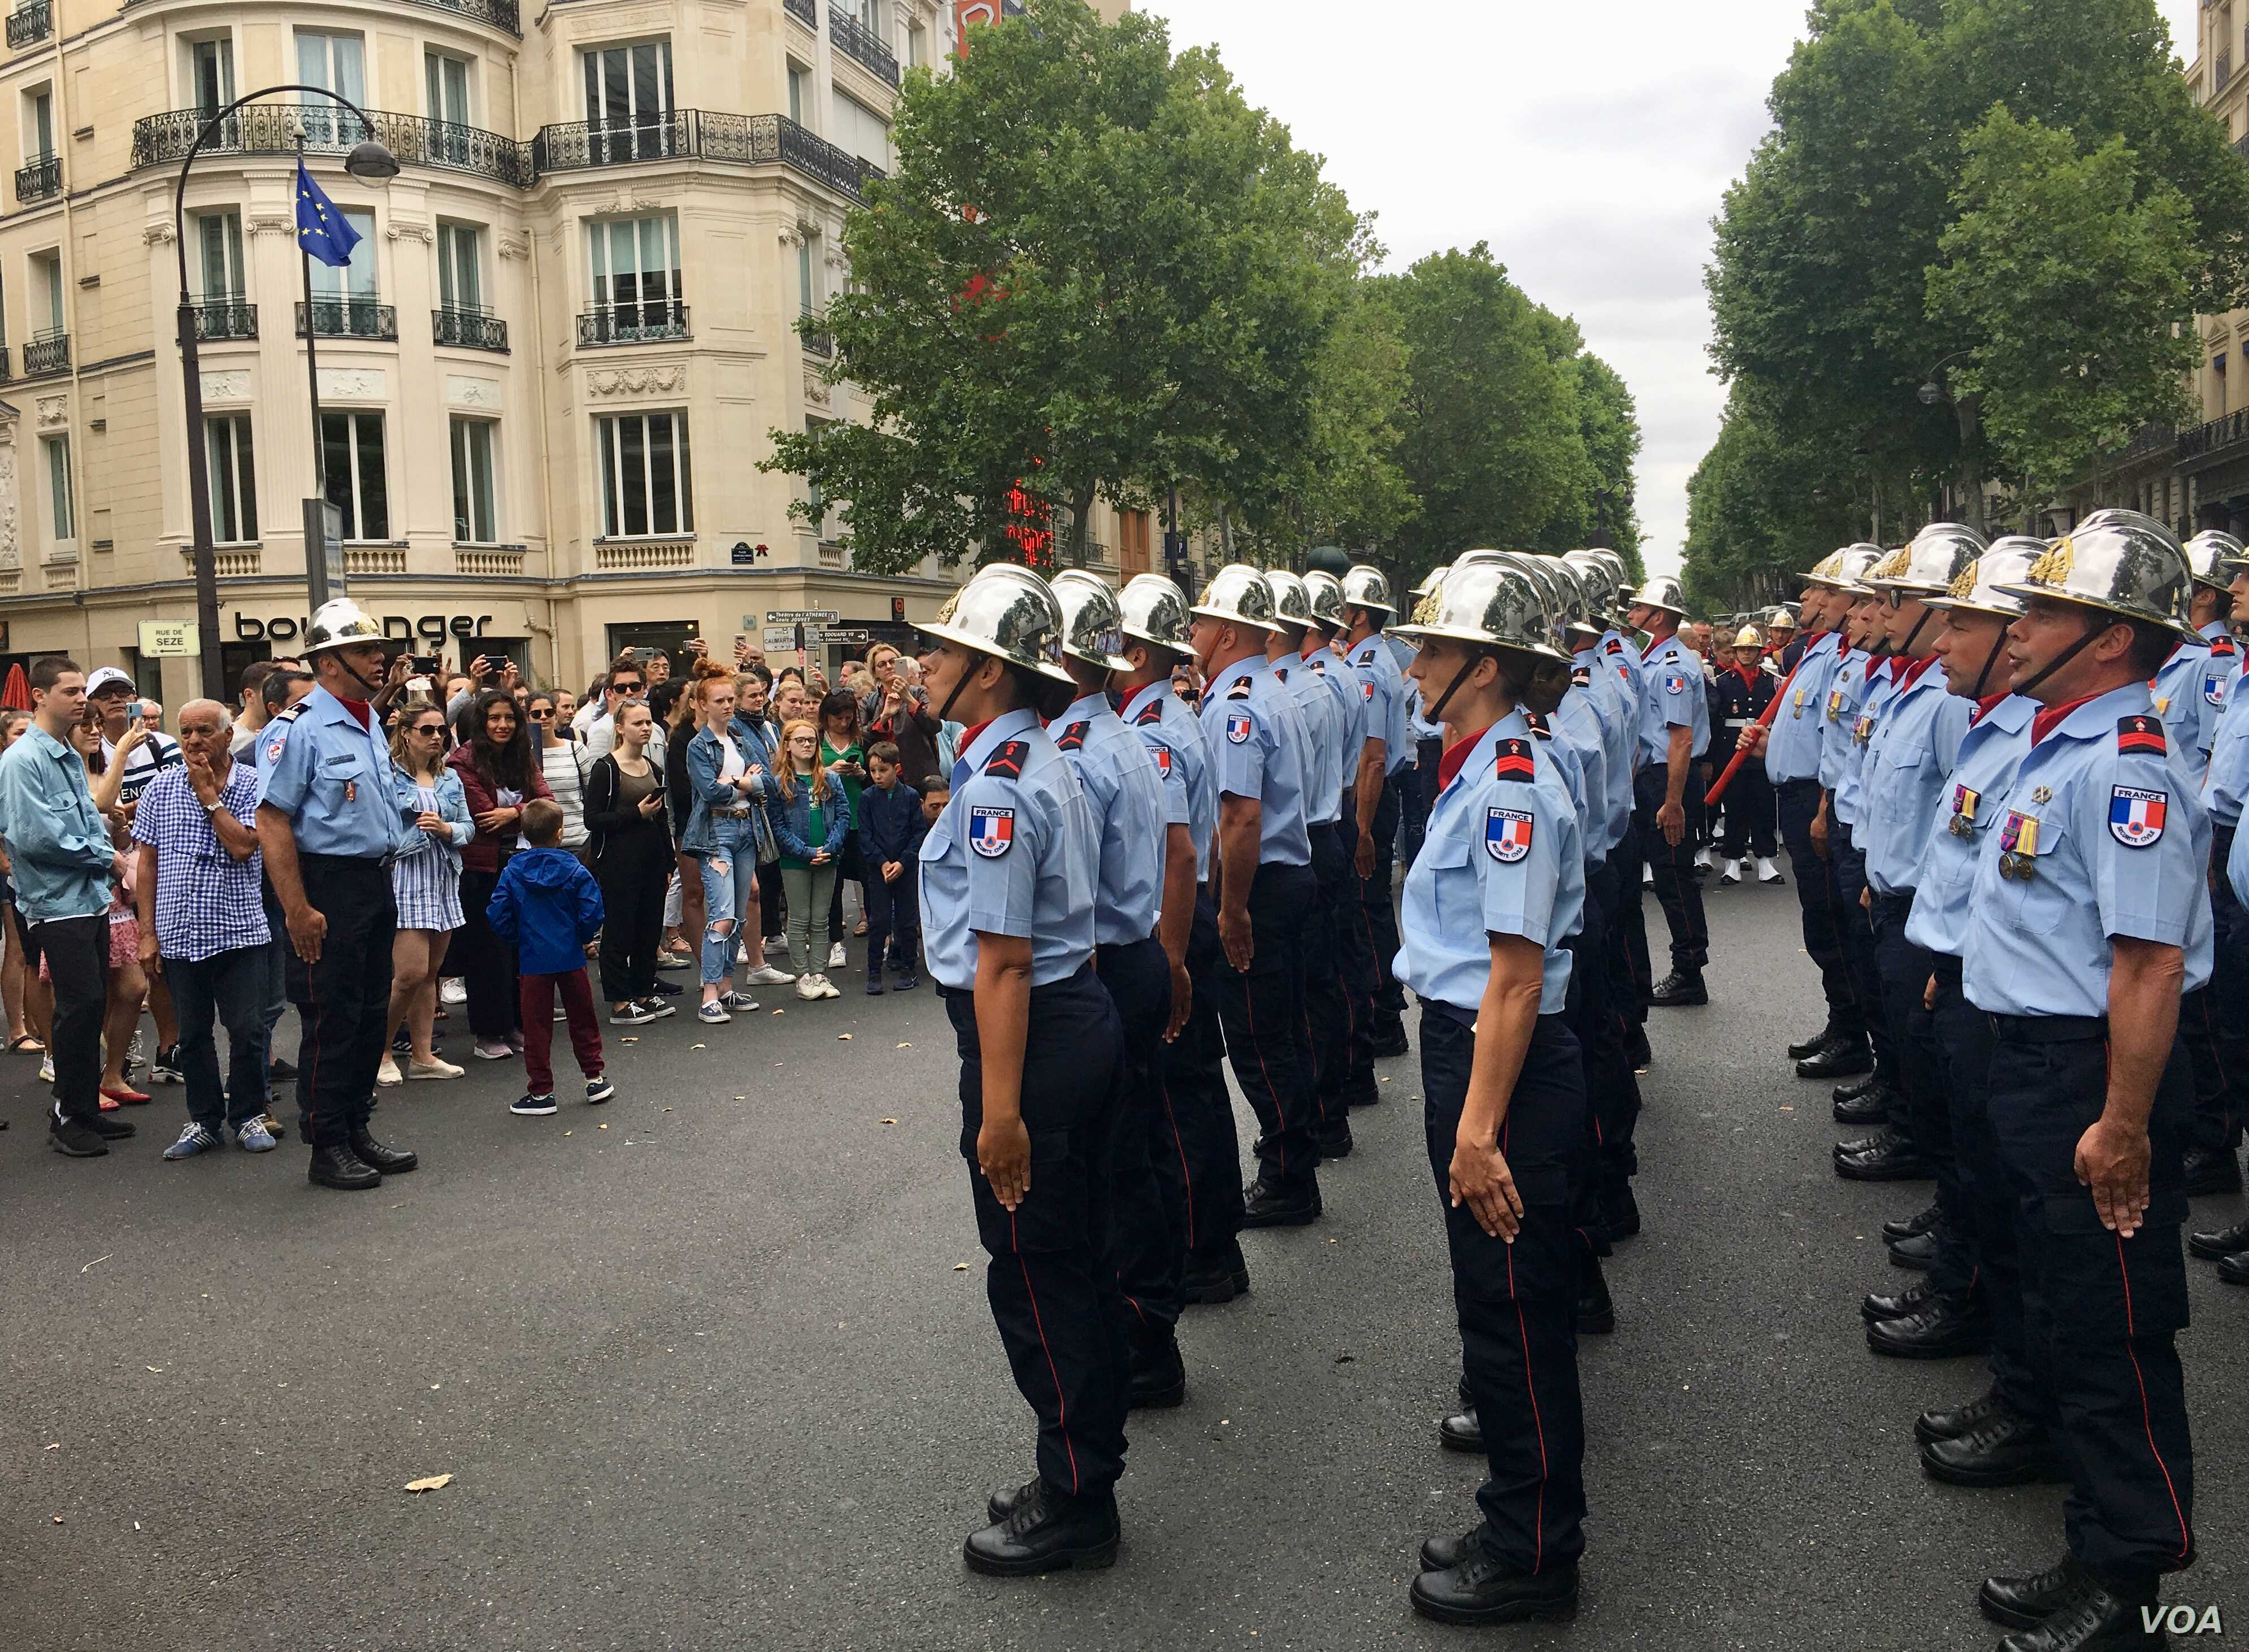 Crowds inspect French forces at the conclusion of the Bastille Day parade, in Paris, France, July 14, 2019. (L. Bryant/VOA)